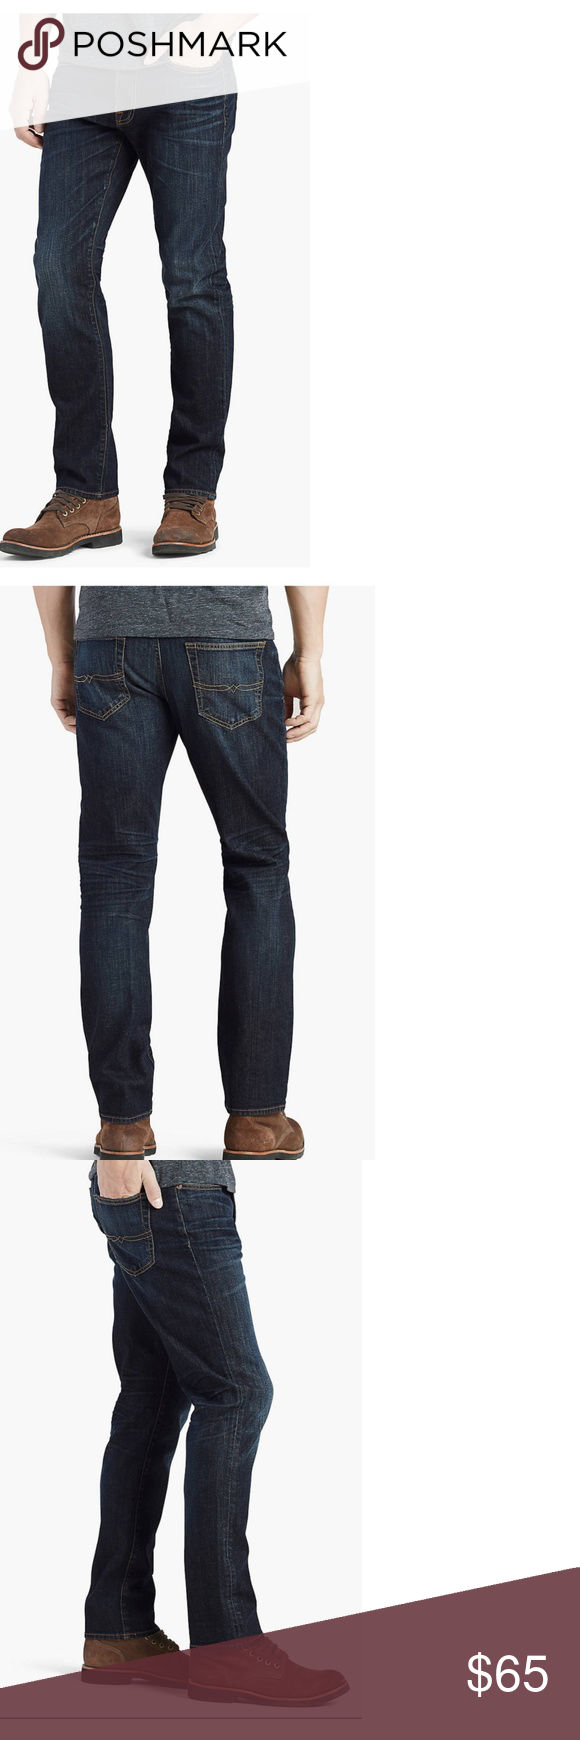 c57c6b14c6a Mens Lucky Brand 410 Jeans 36 x 32 Mens Lucky Brand jeans in the 410  Athletic Slim fit. Mid-rise